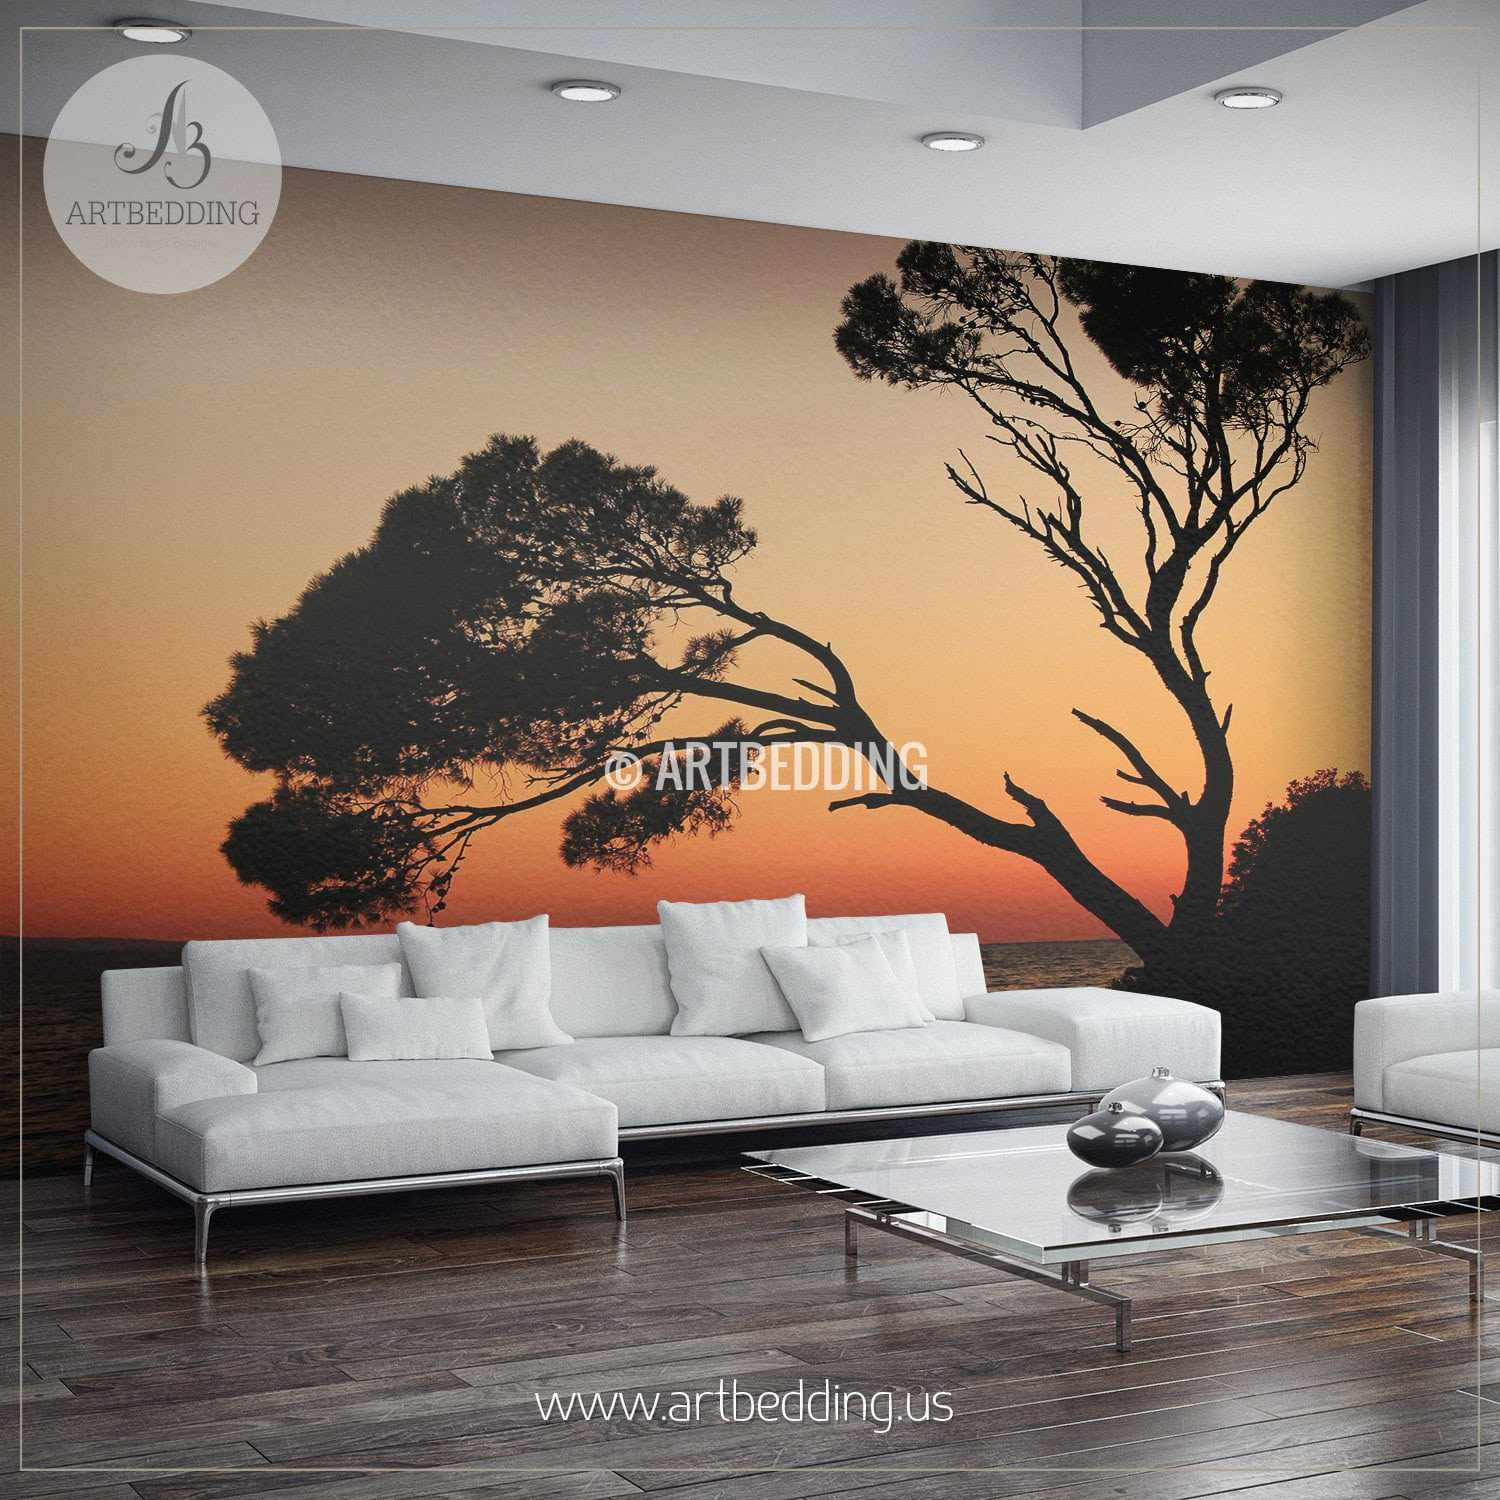 Sunset Tree Silhouettes Self Adhesive Photo Mural